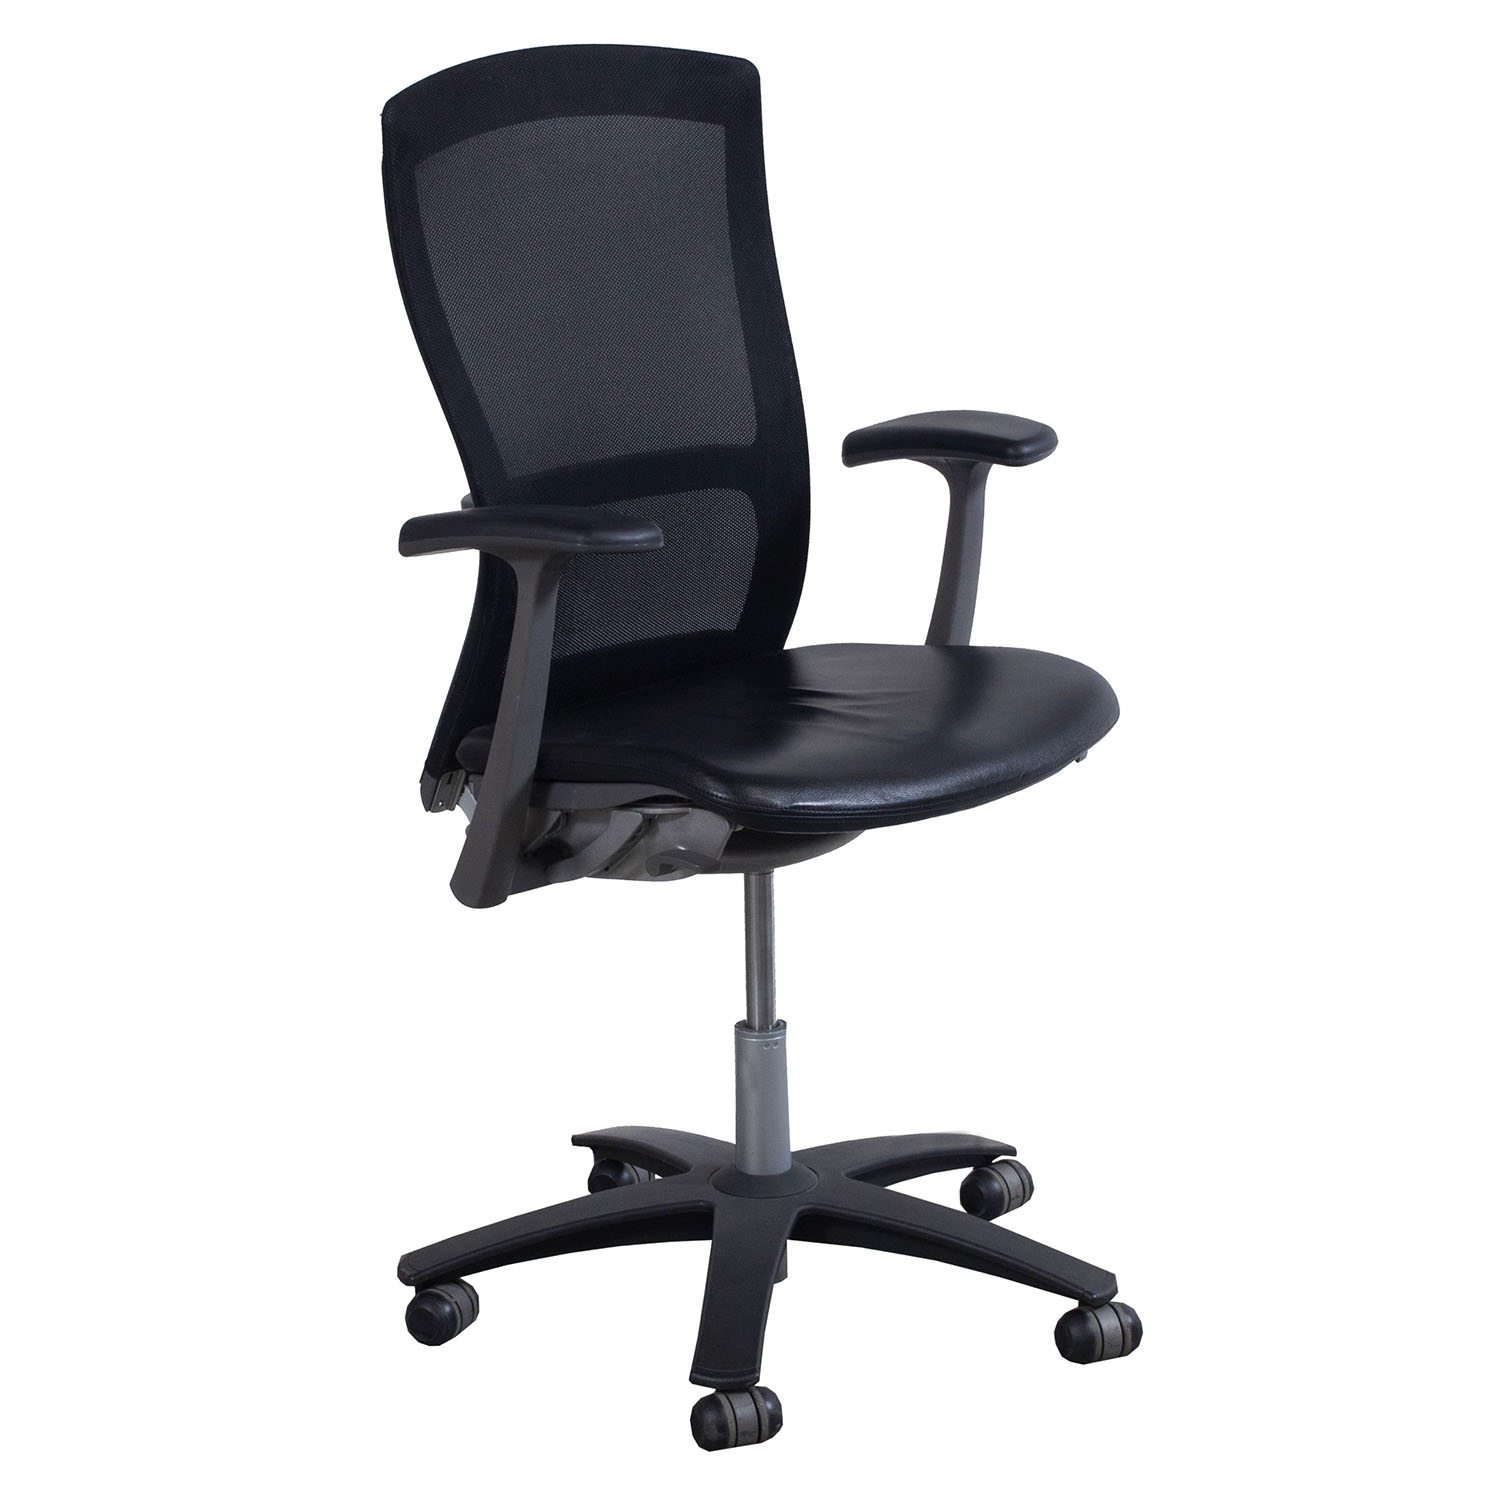 Knoll Life Used Leather and Mesh Conference Chair, Black